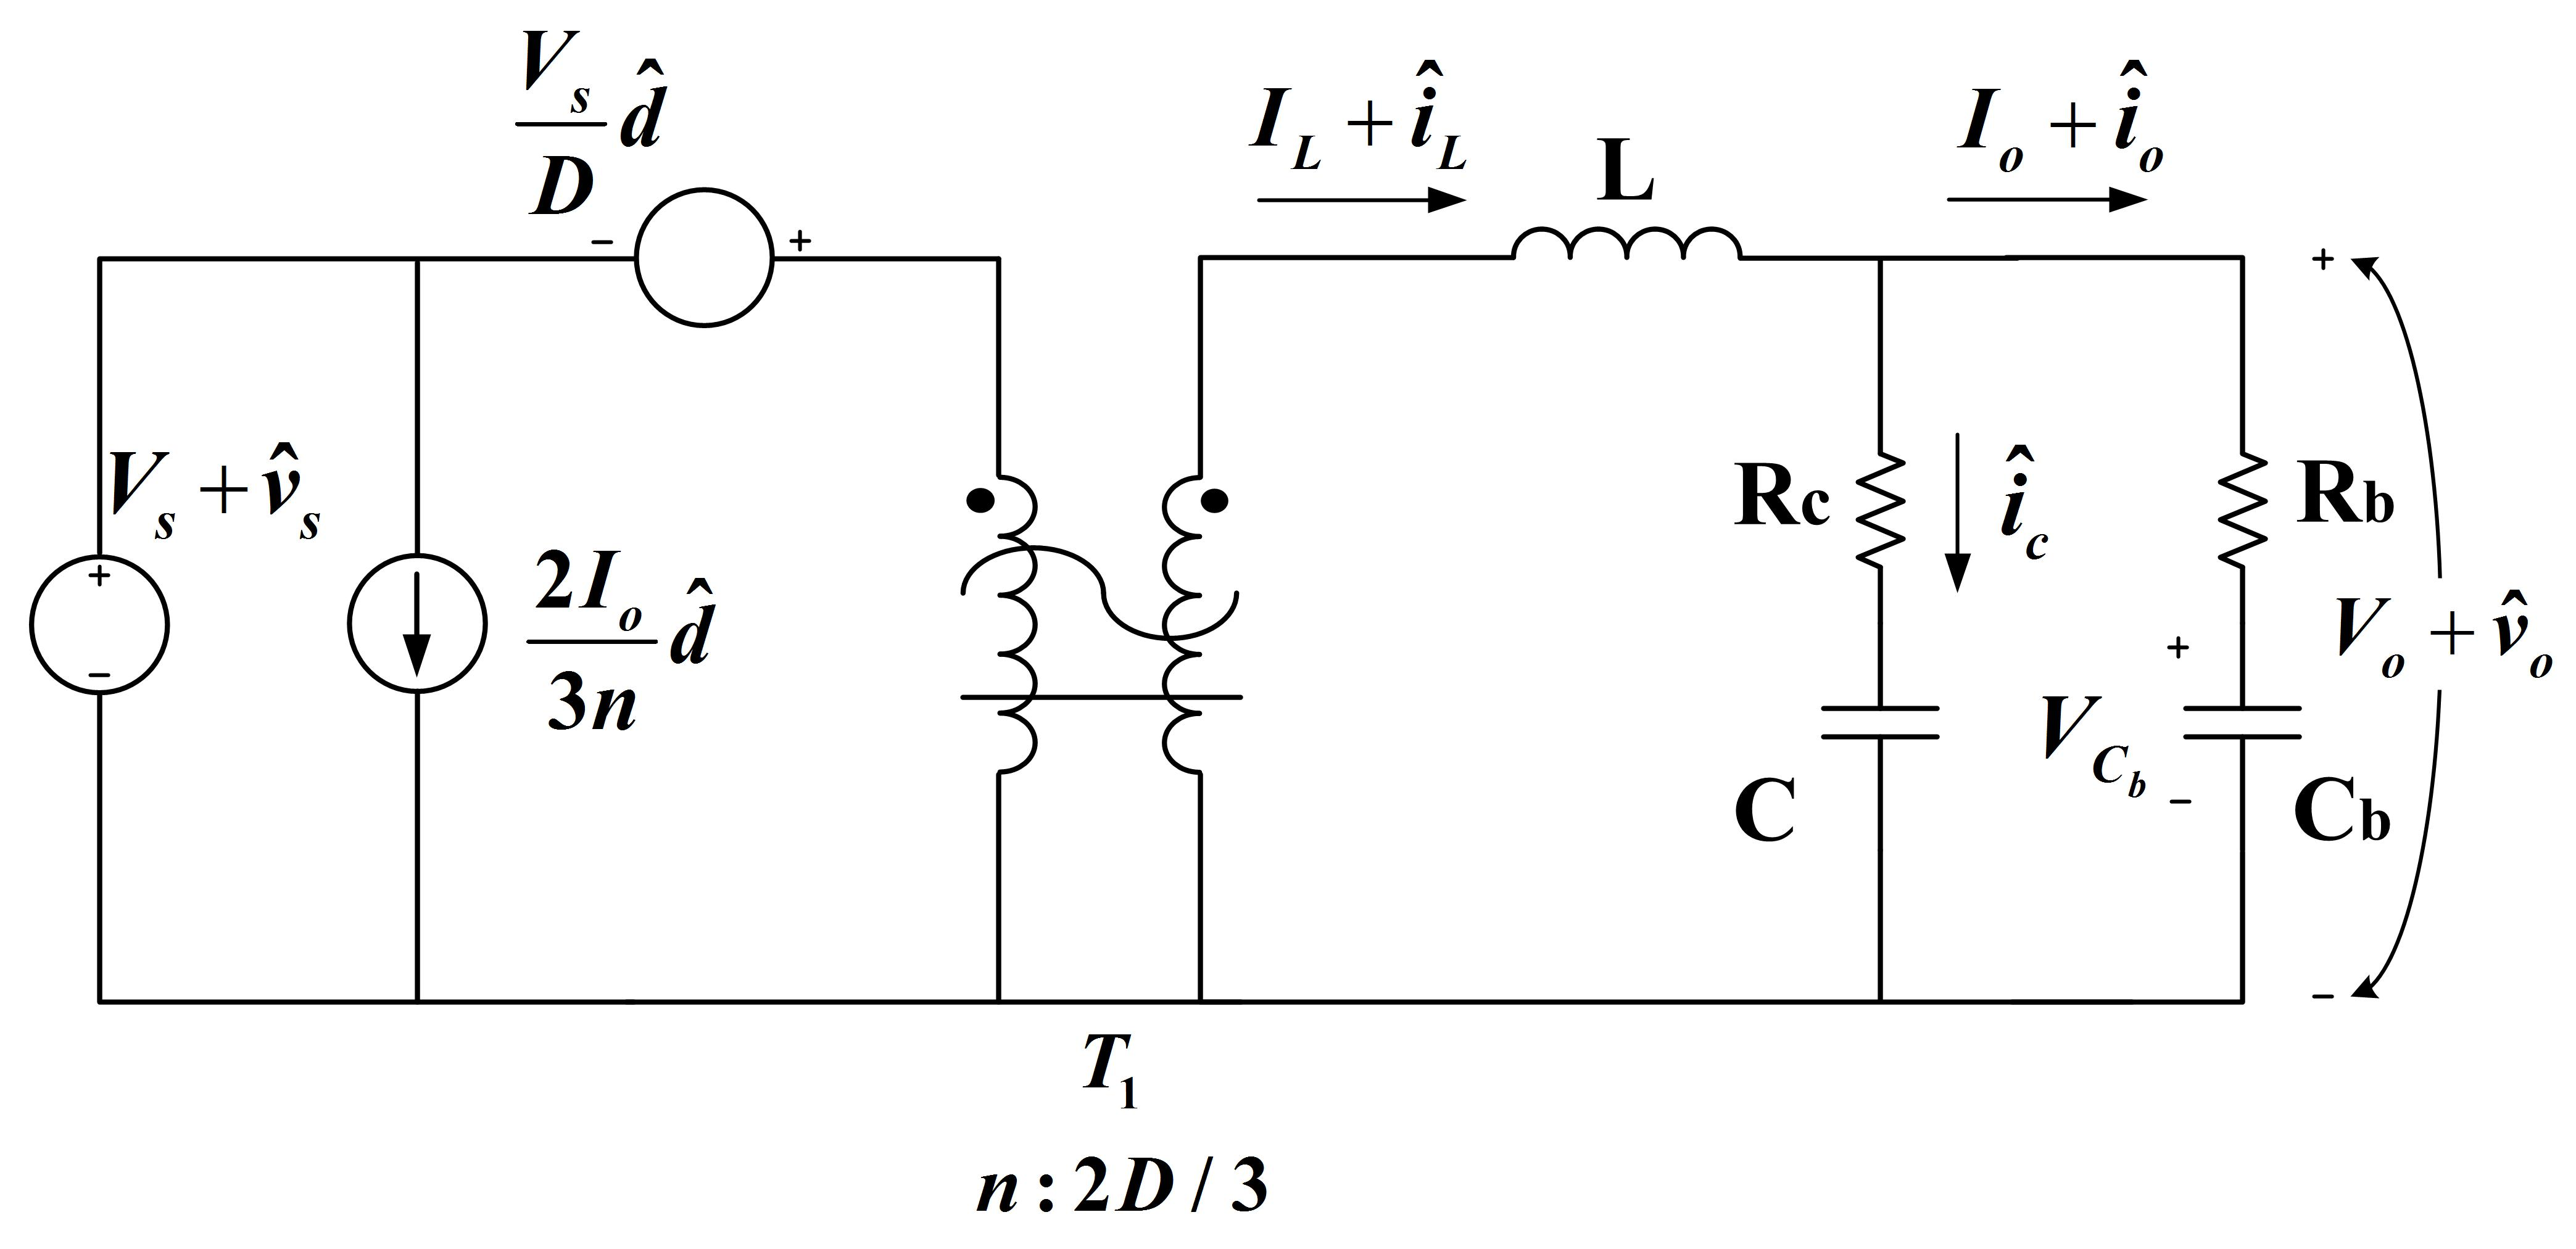 Multiple Output Charger Based On Phase Shift Full Bridge Converter With The Novel Time Division